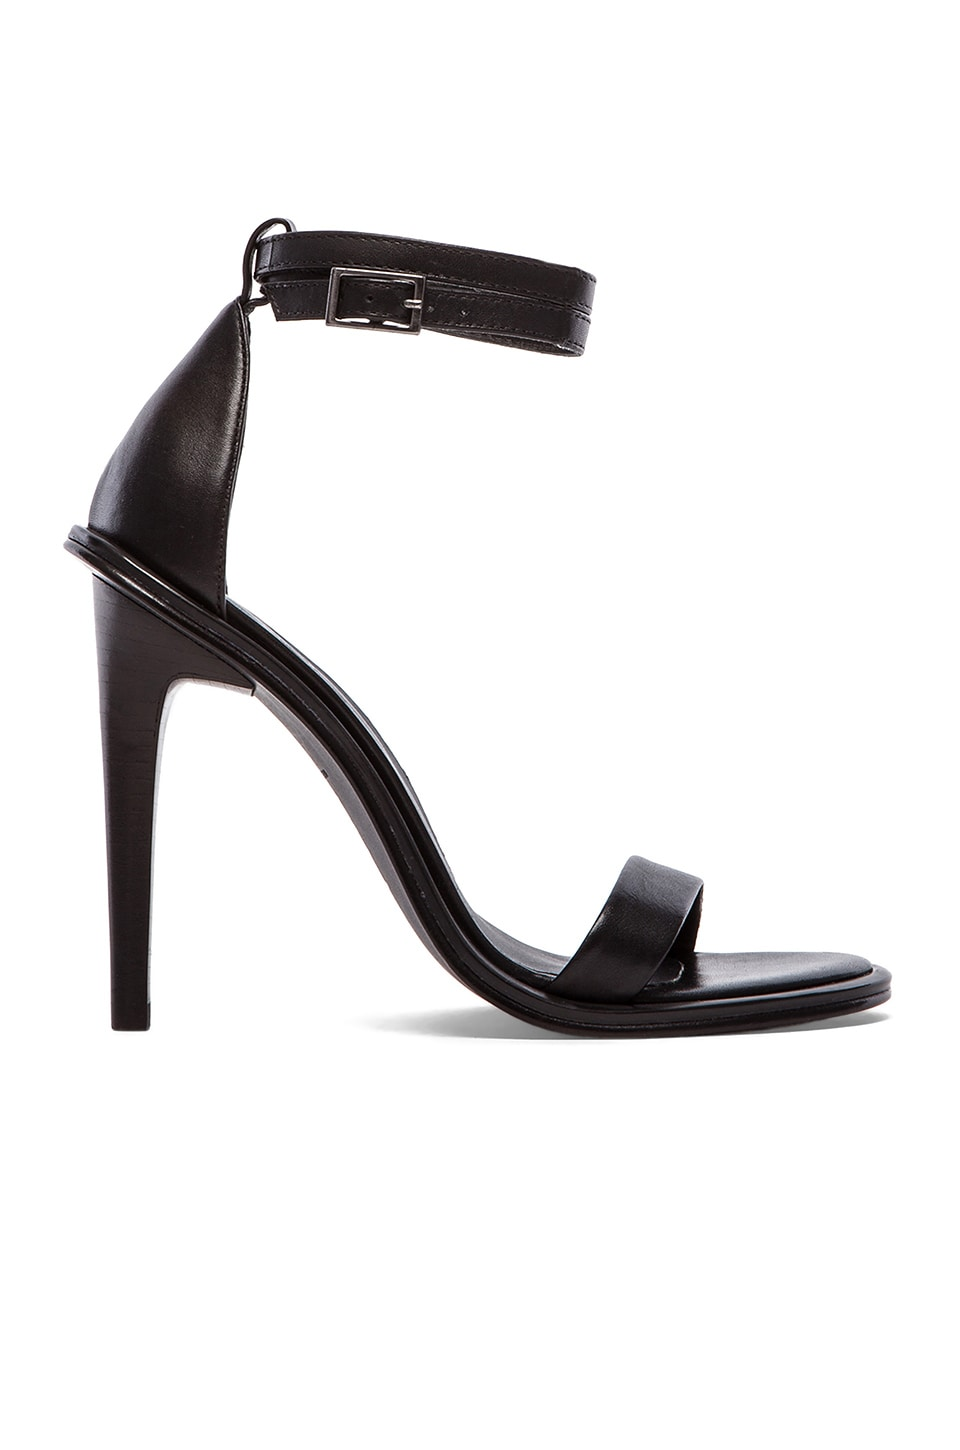 Tibi Amber Heel in Black